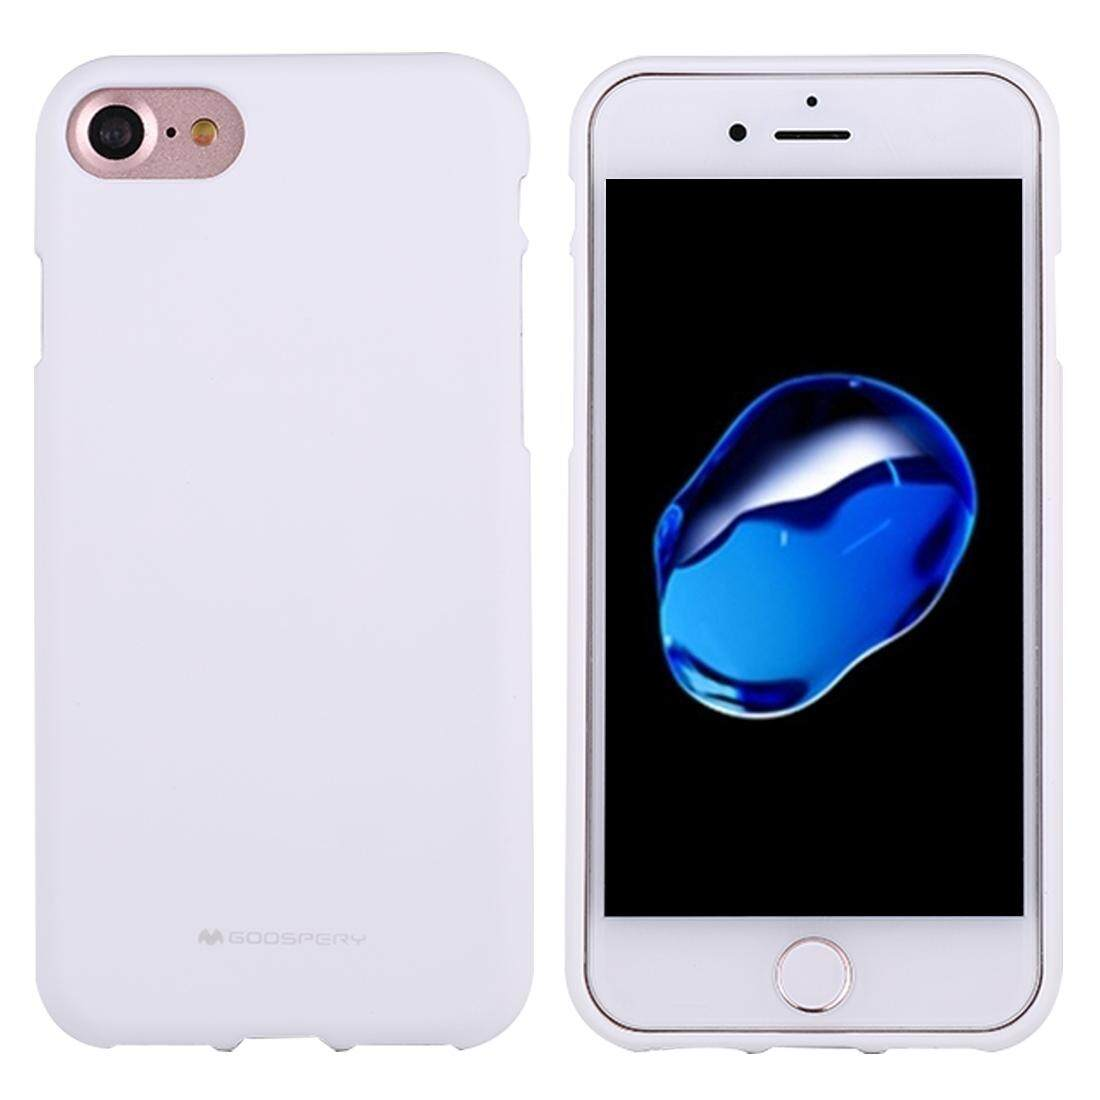 Features Mercury Goospery Soft Feeling For Samsung Galaxy Note 8 S8 Jelly Case Black Iphone 7 Liquid State Tpu Drop Proof